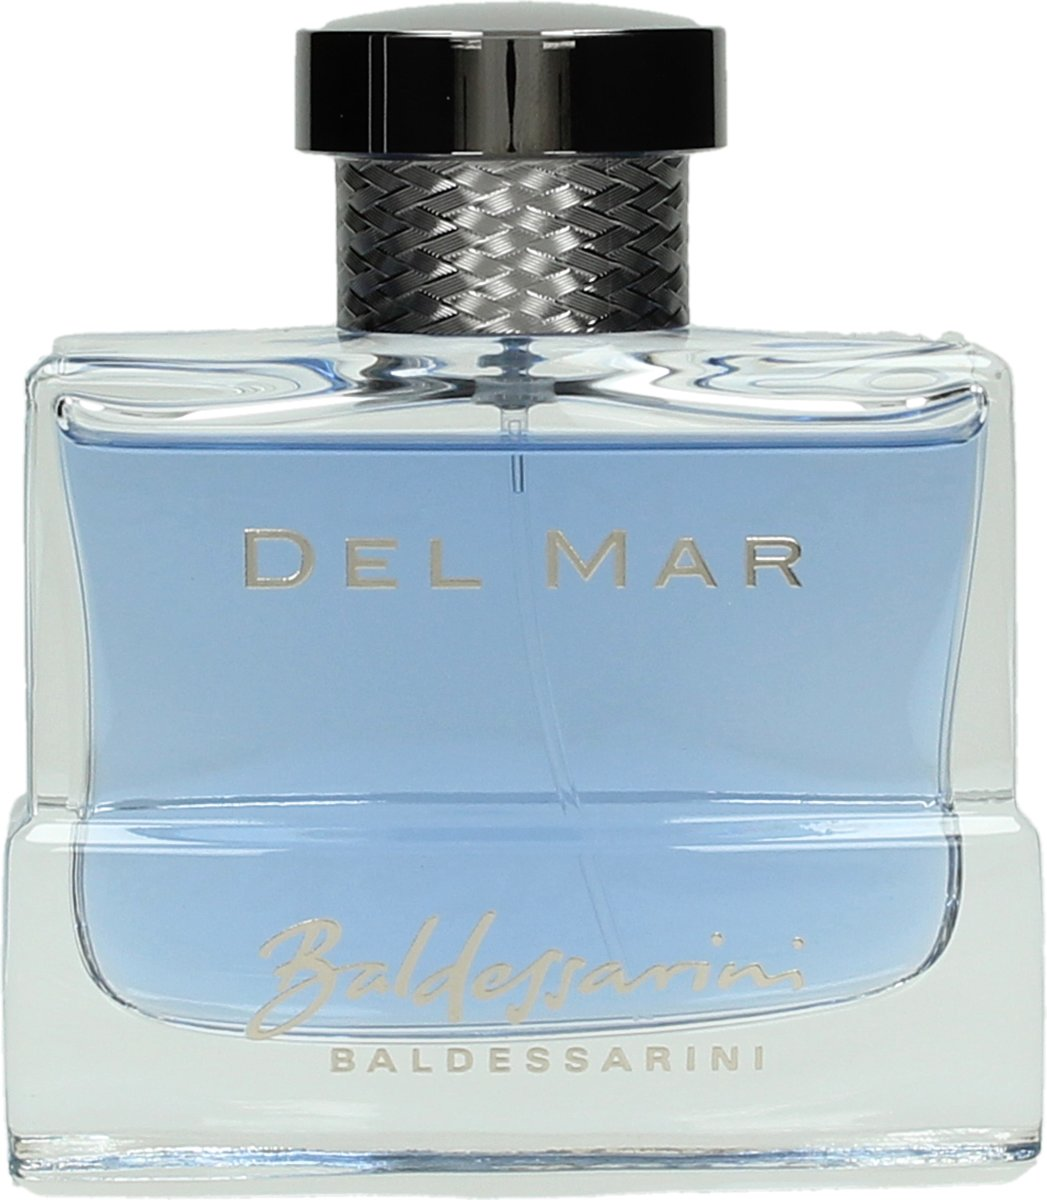 Baldessarini Del Mar - 90 ml - Eau de toilette